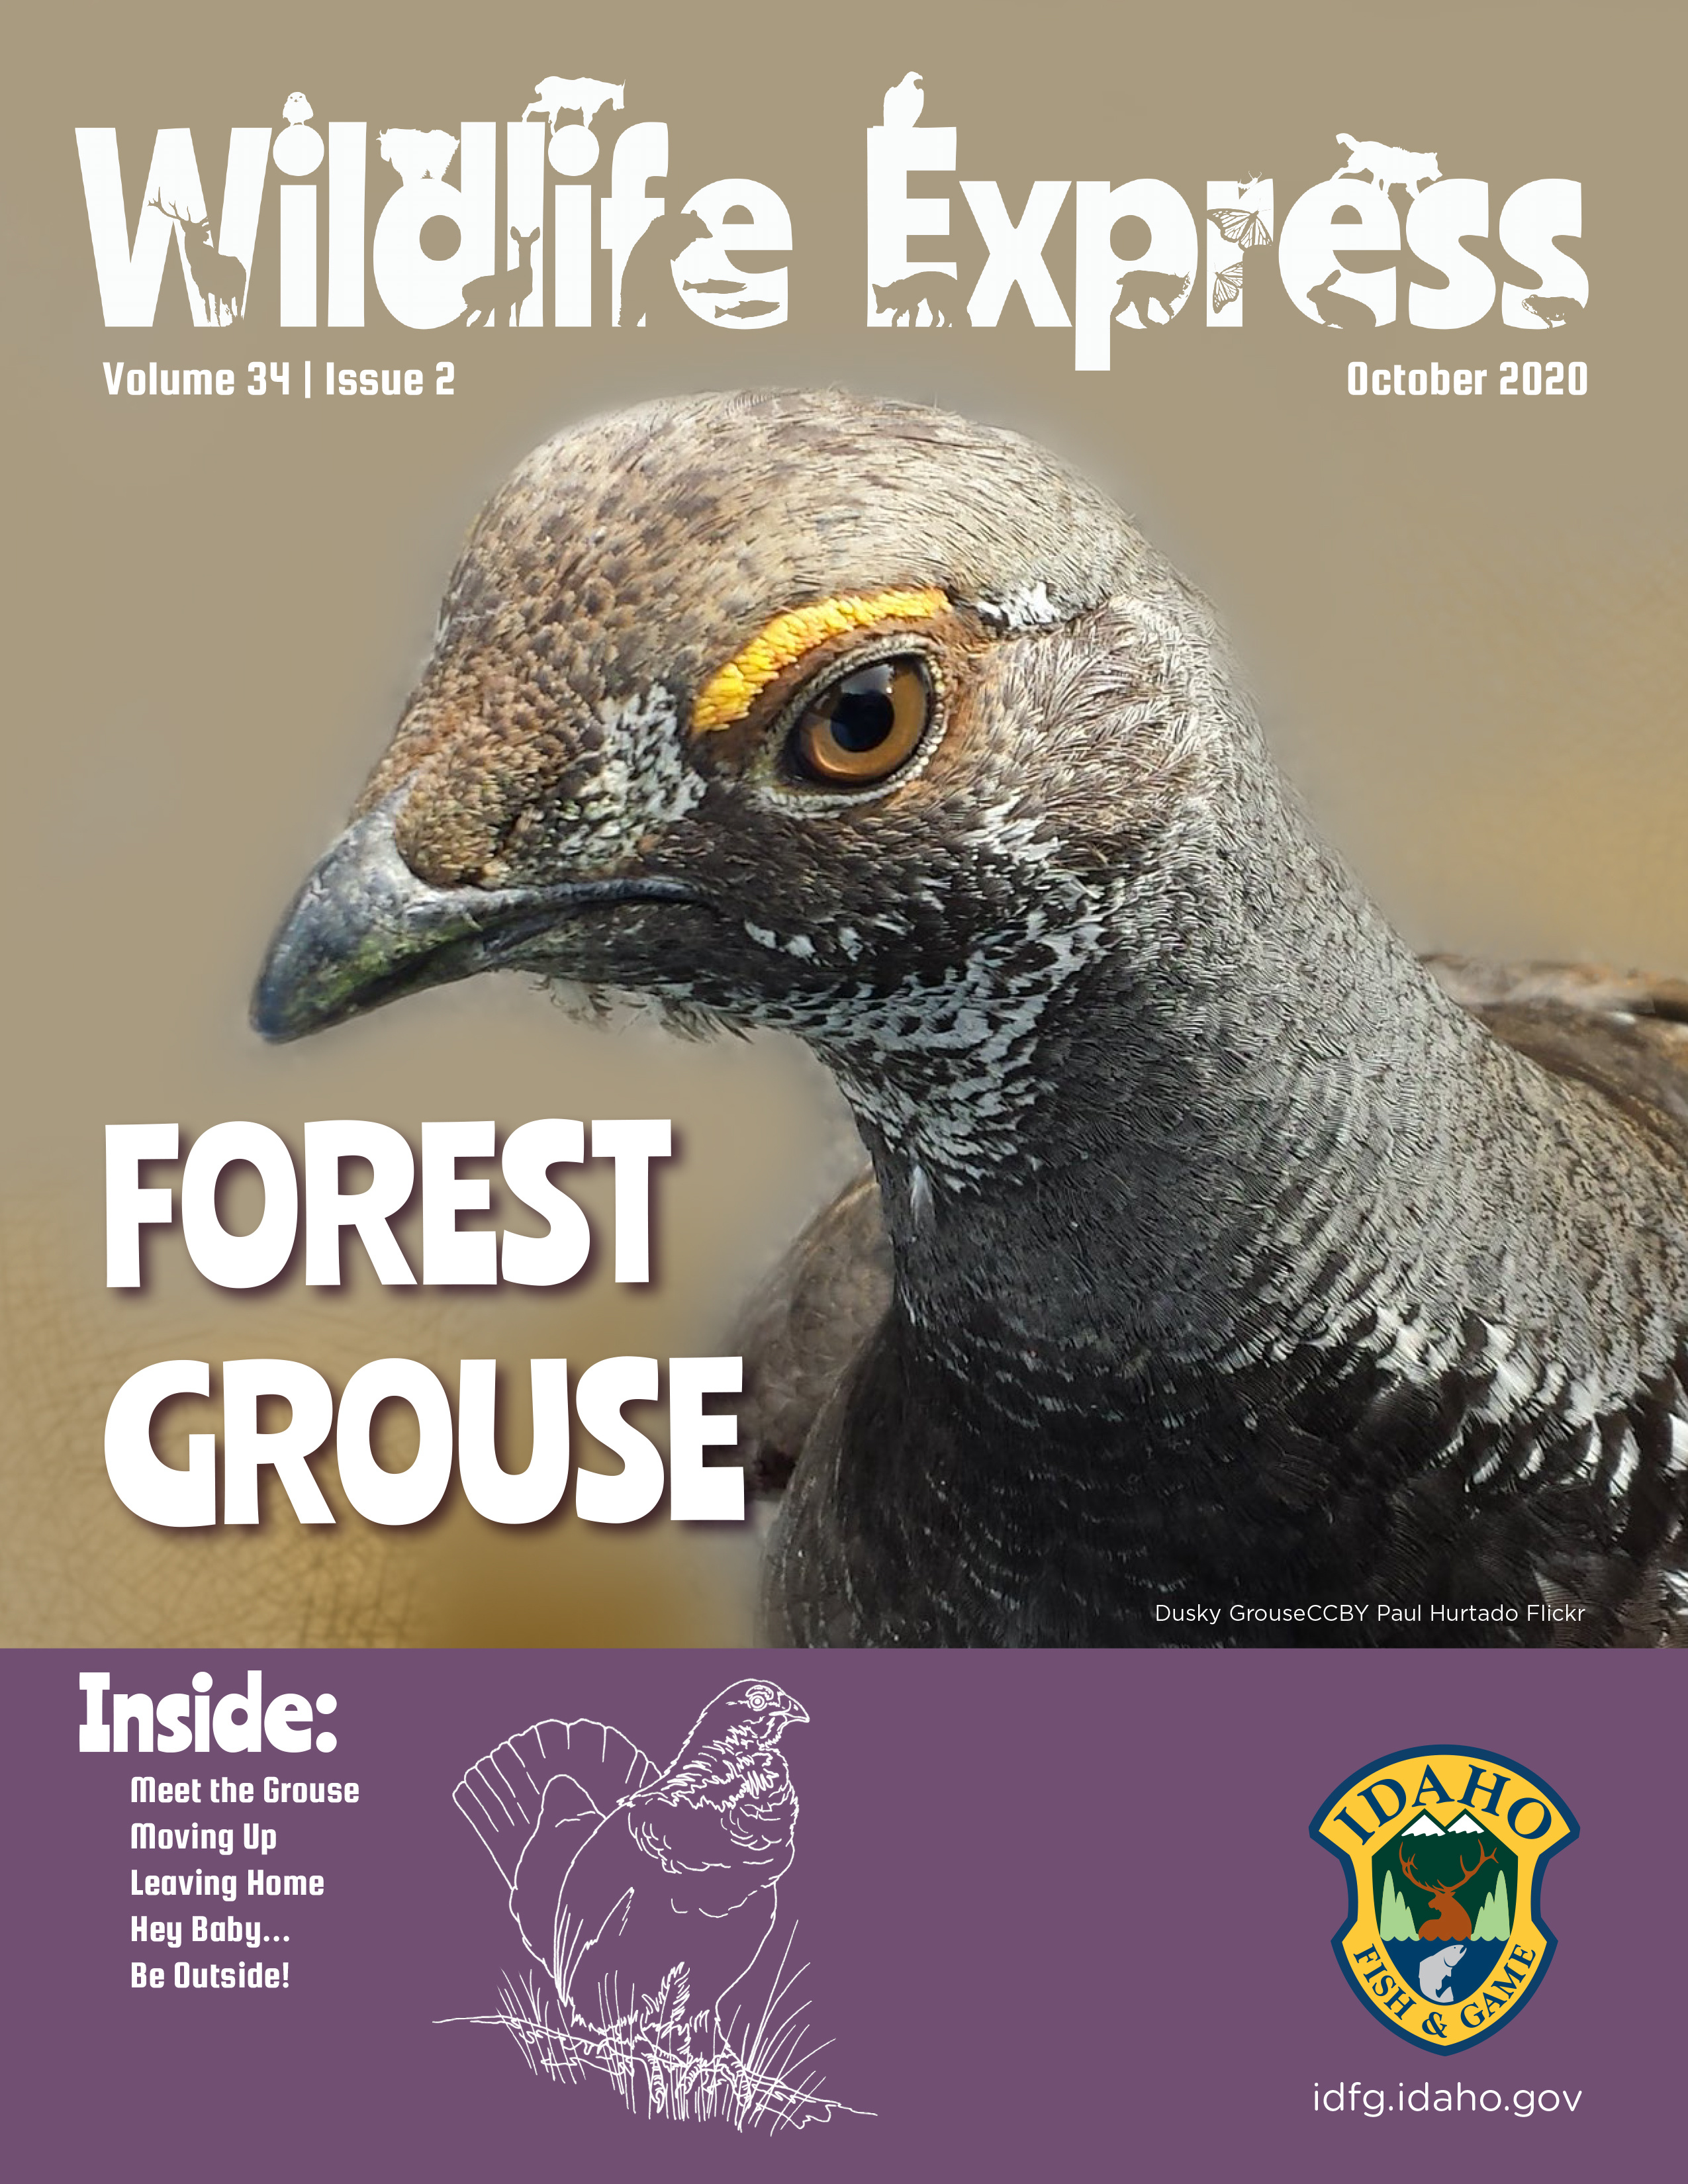 A forest grouse close up peering through one eye